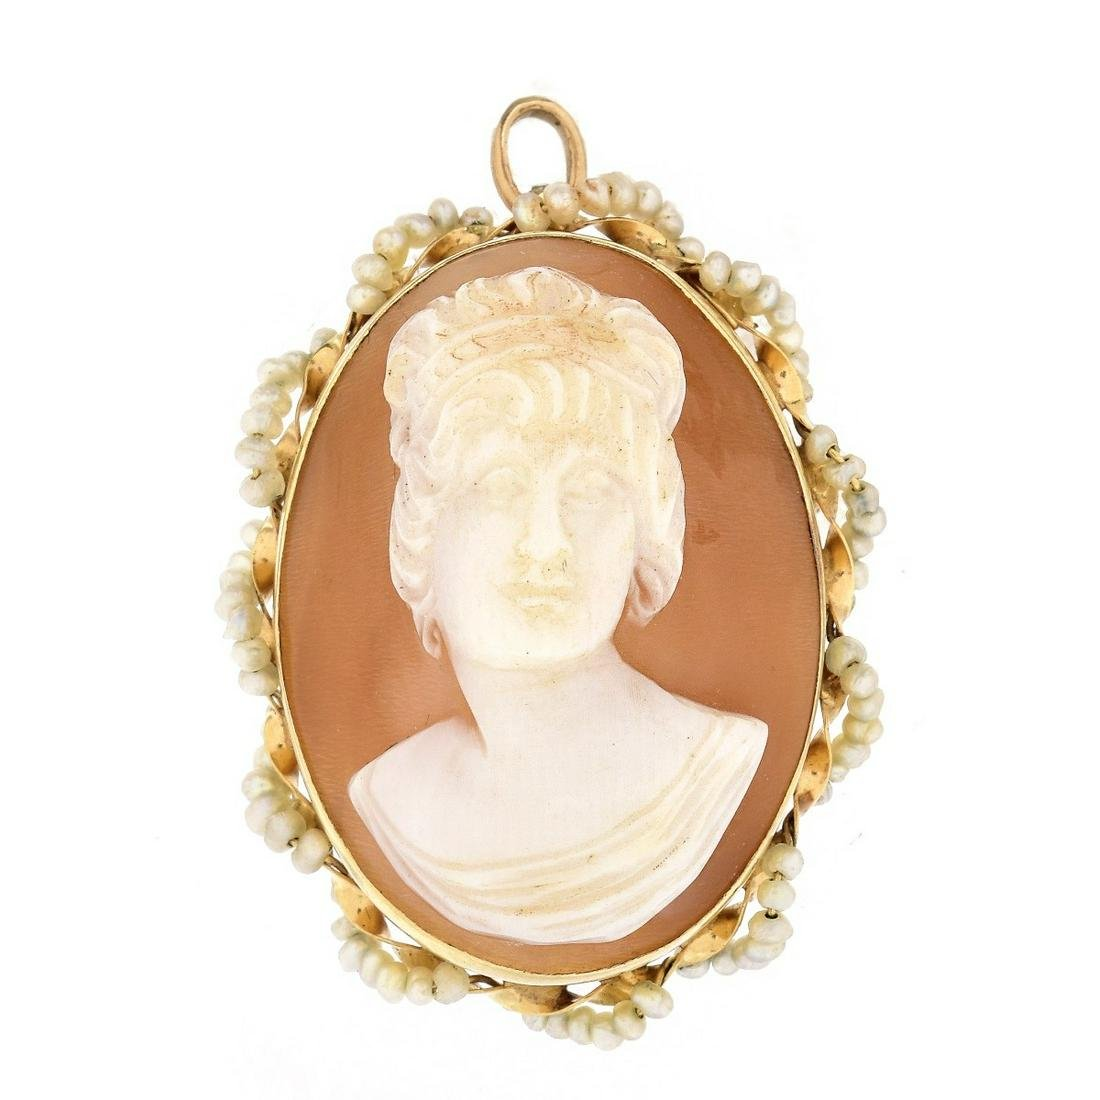 14K Gold and Seed Pearl Cameo Pendant Brooch